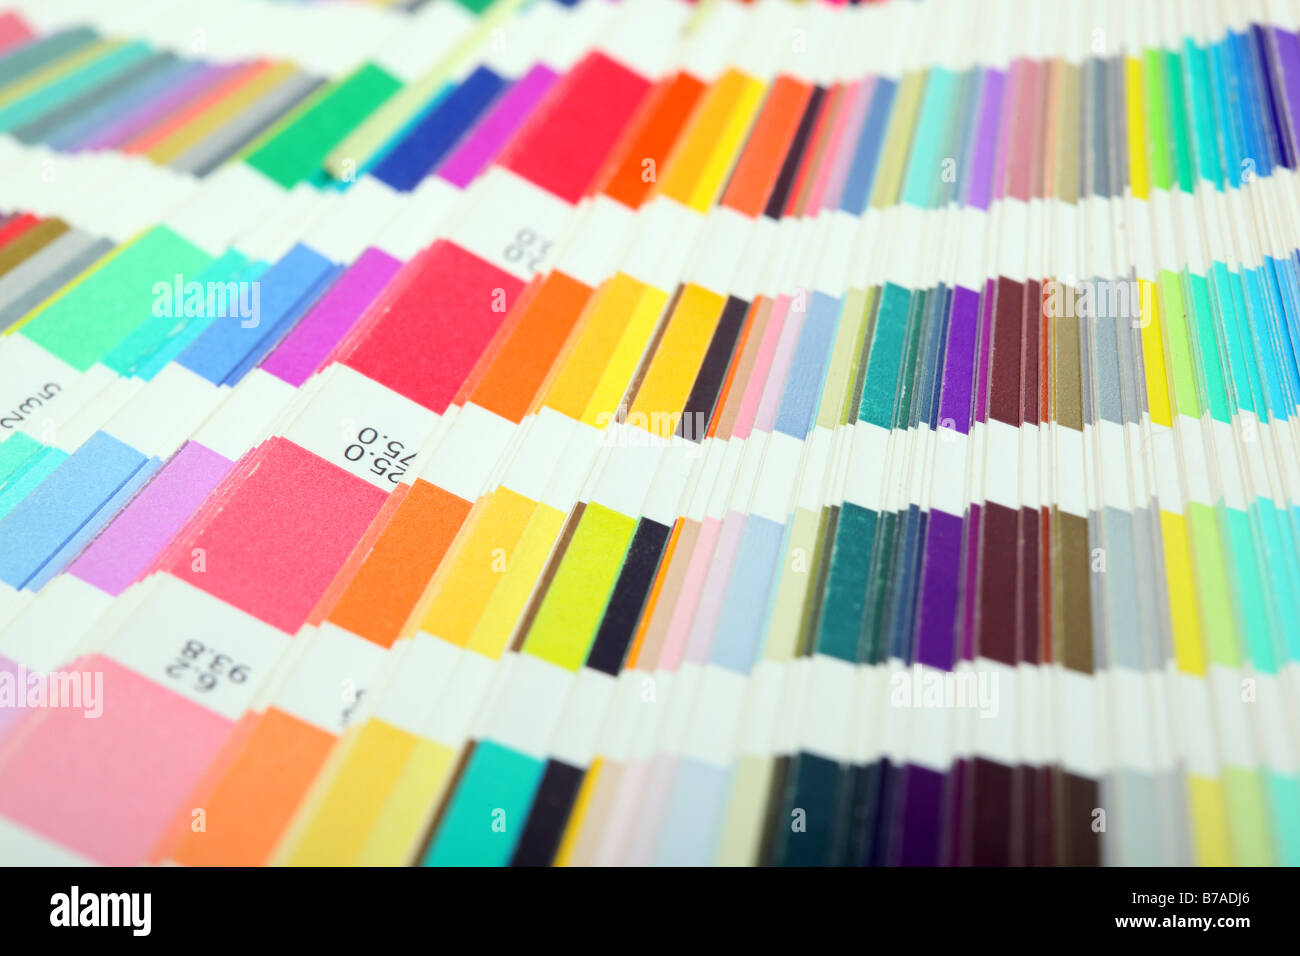 detail from pantone color scale samples lithography printing industry for background use - Stock Image